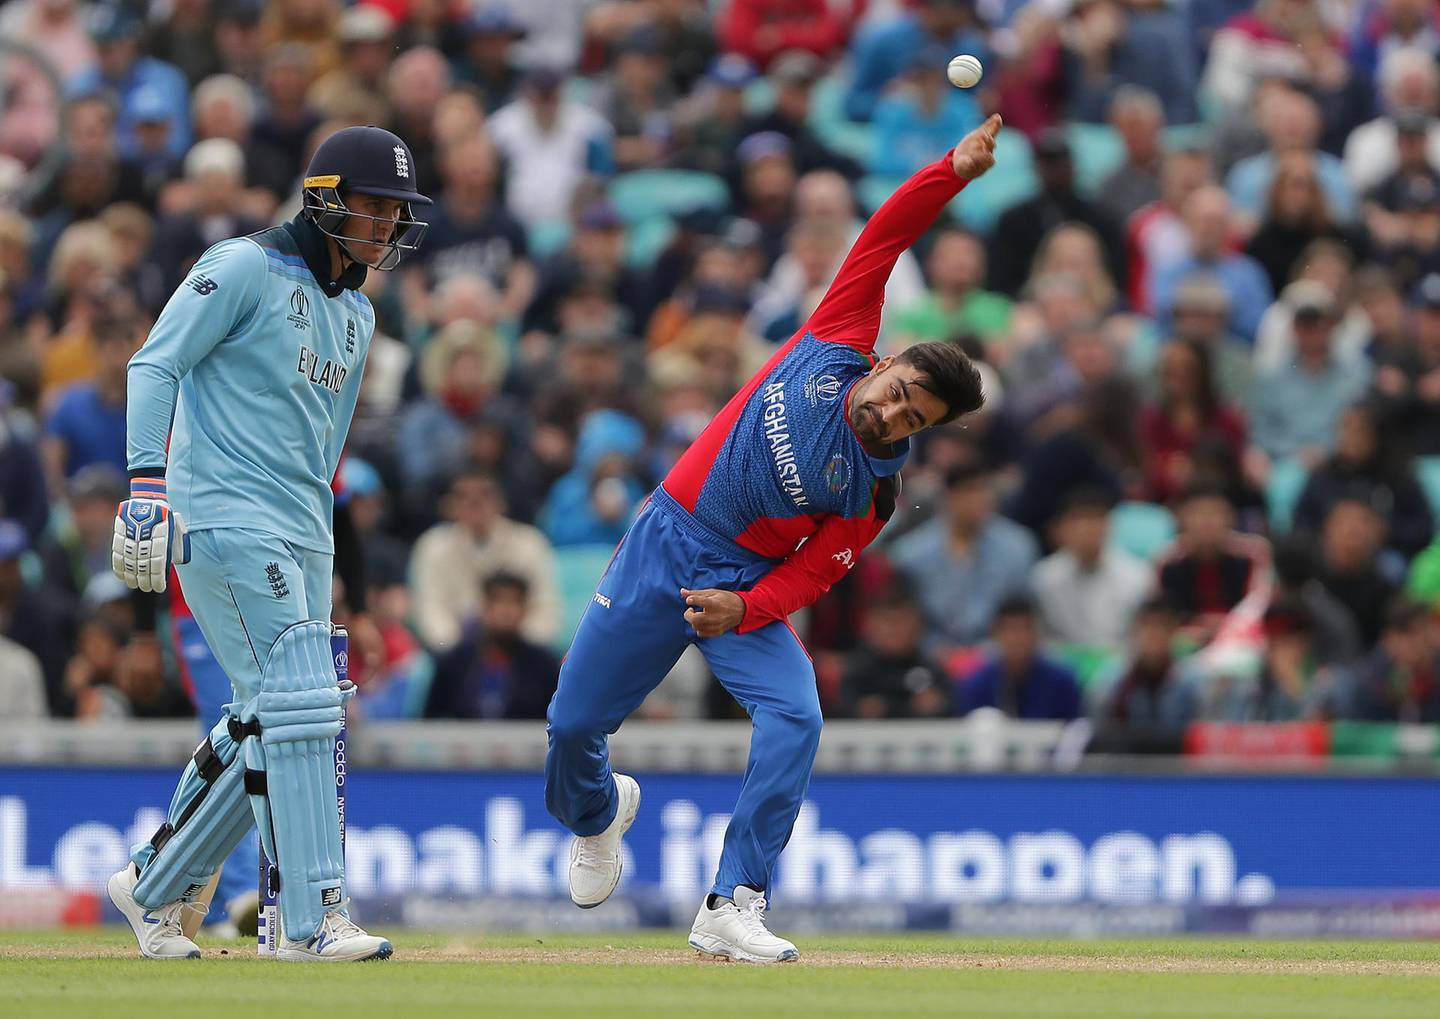 LONDON, ENGLAND - MAY 27: Rashid Khan of Afghanistan bowls during the ICC Cricket World Cup 2019 Warm Up match between England and Afghanistan at The Kia Oval on May 27, 2019 in London, England. (Photo by Richard Heathcote/Getty Images)